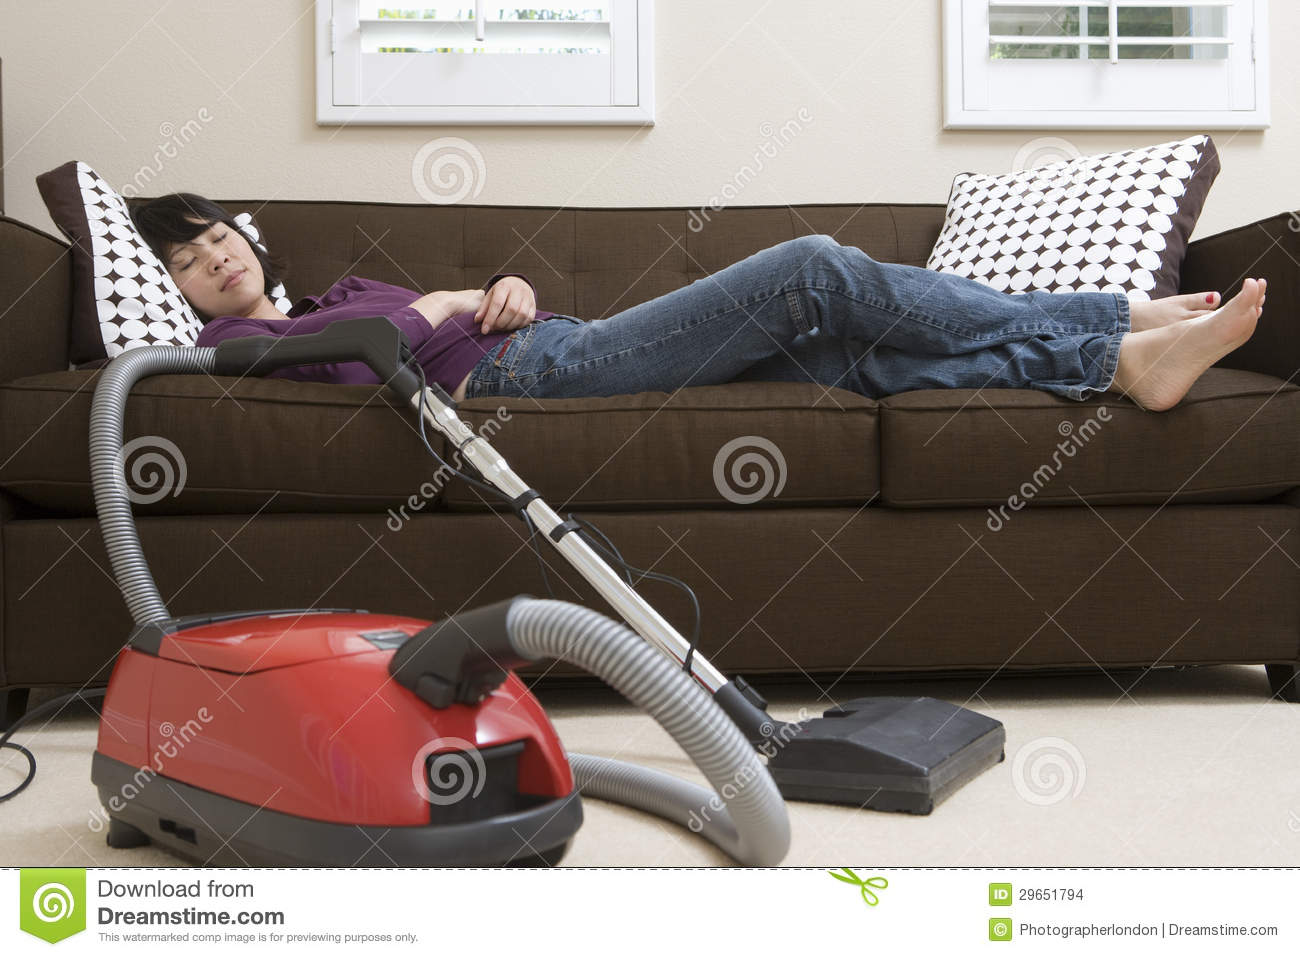 Woman Relaxing On Couch With Vacuum Cleaner Stock Images  : woman relaxing couch vacuum cleaner 29651794 from www.dreamstime.com size 1300 x 957 jpeg 130kB